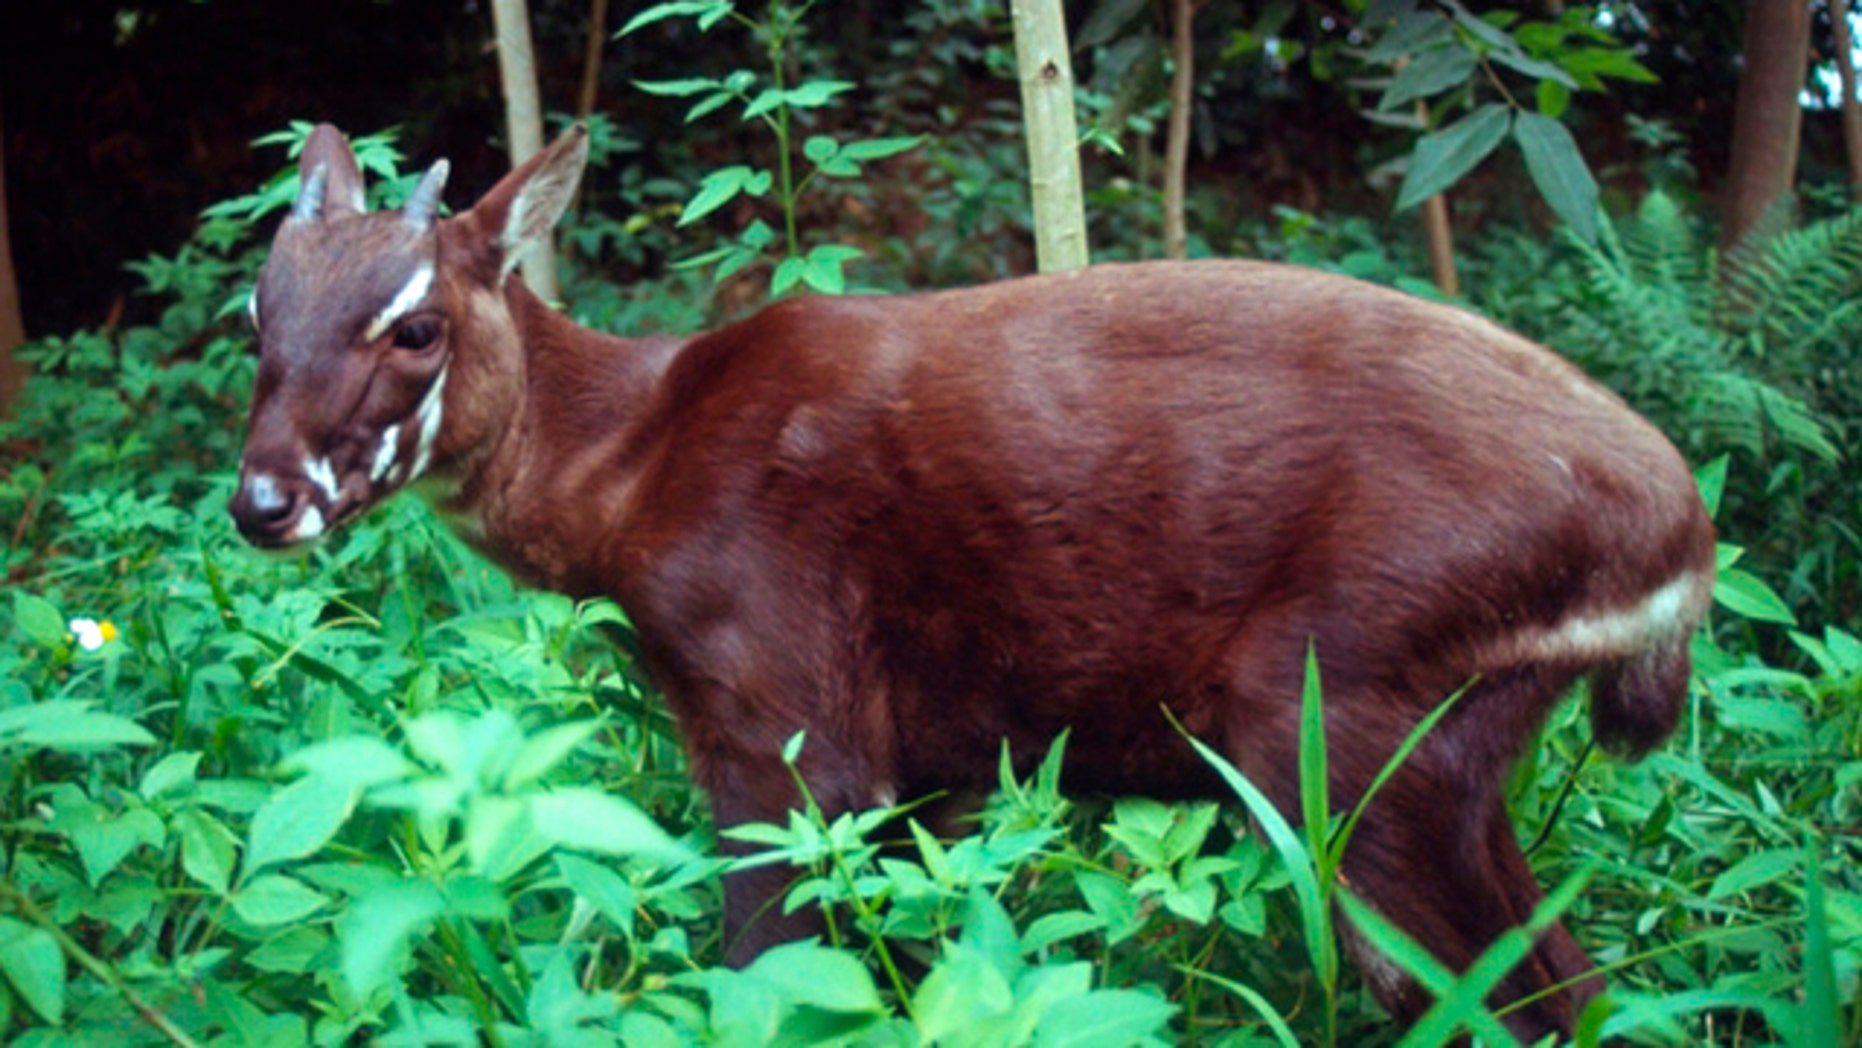 """In this undated photo released by the international conservation group WWF, a saola pauses in the jungle of Vietnam. A new nature reserve in Quang Nam, central Vietnam, raises hope for the survival of the recently discovered and critically endangered antelope-like species called the saola, an official said Monday, April 18, 2011. The saola looks like a small deer or antelope with two horns, even though it's locally called an Asian """"unicorn."""""""